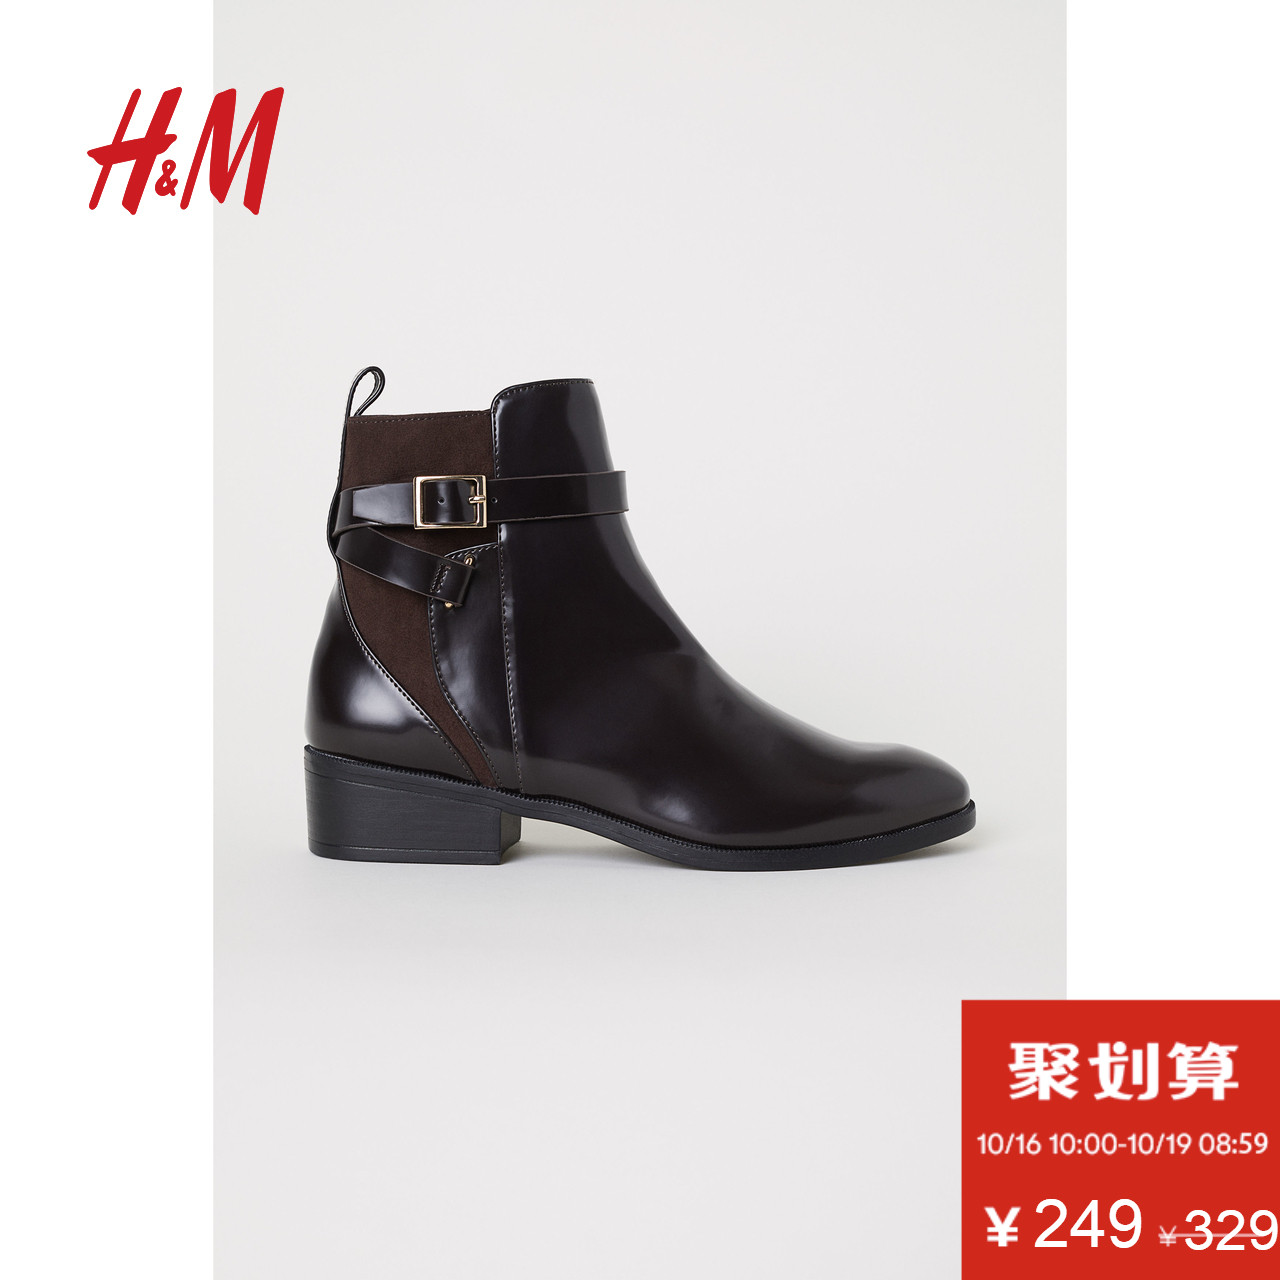 H&M women's shoes 2018 autumn new fashion thick with short tube with imitation leather boots HM0632516